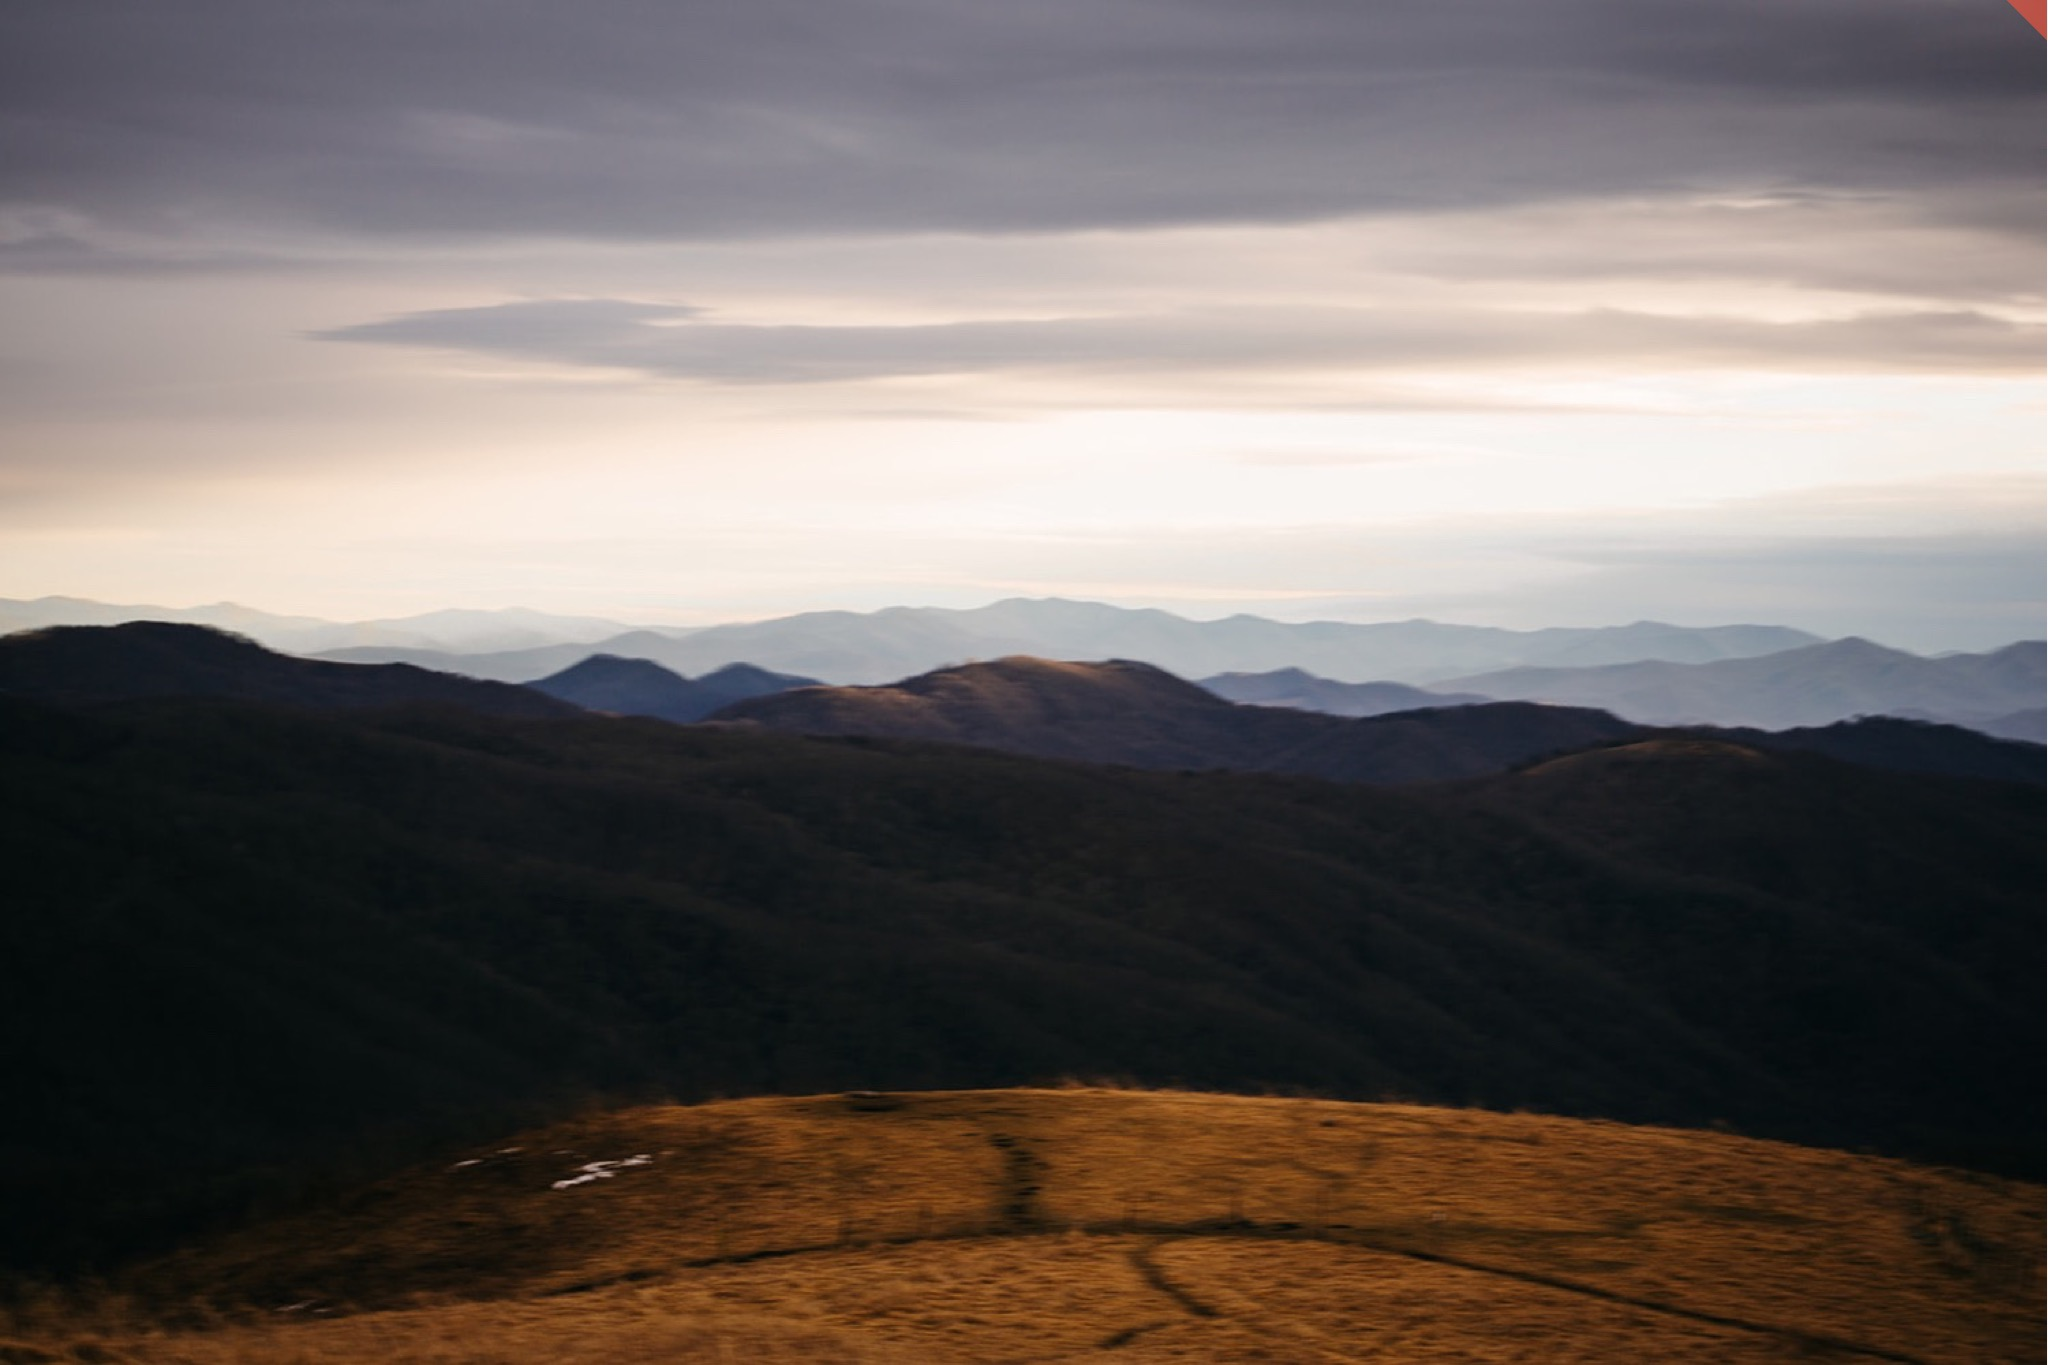 The view of the Blue Ridge Mountains through the fog as seen from the top of Max Patch.